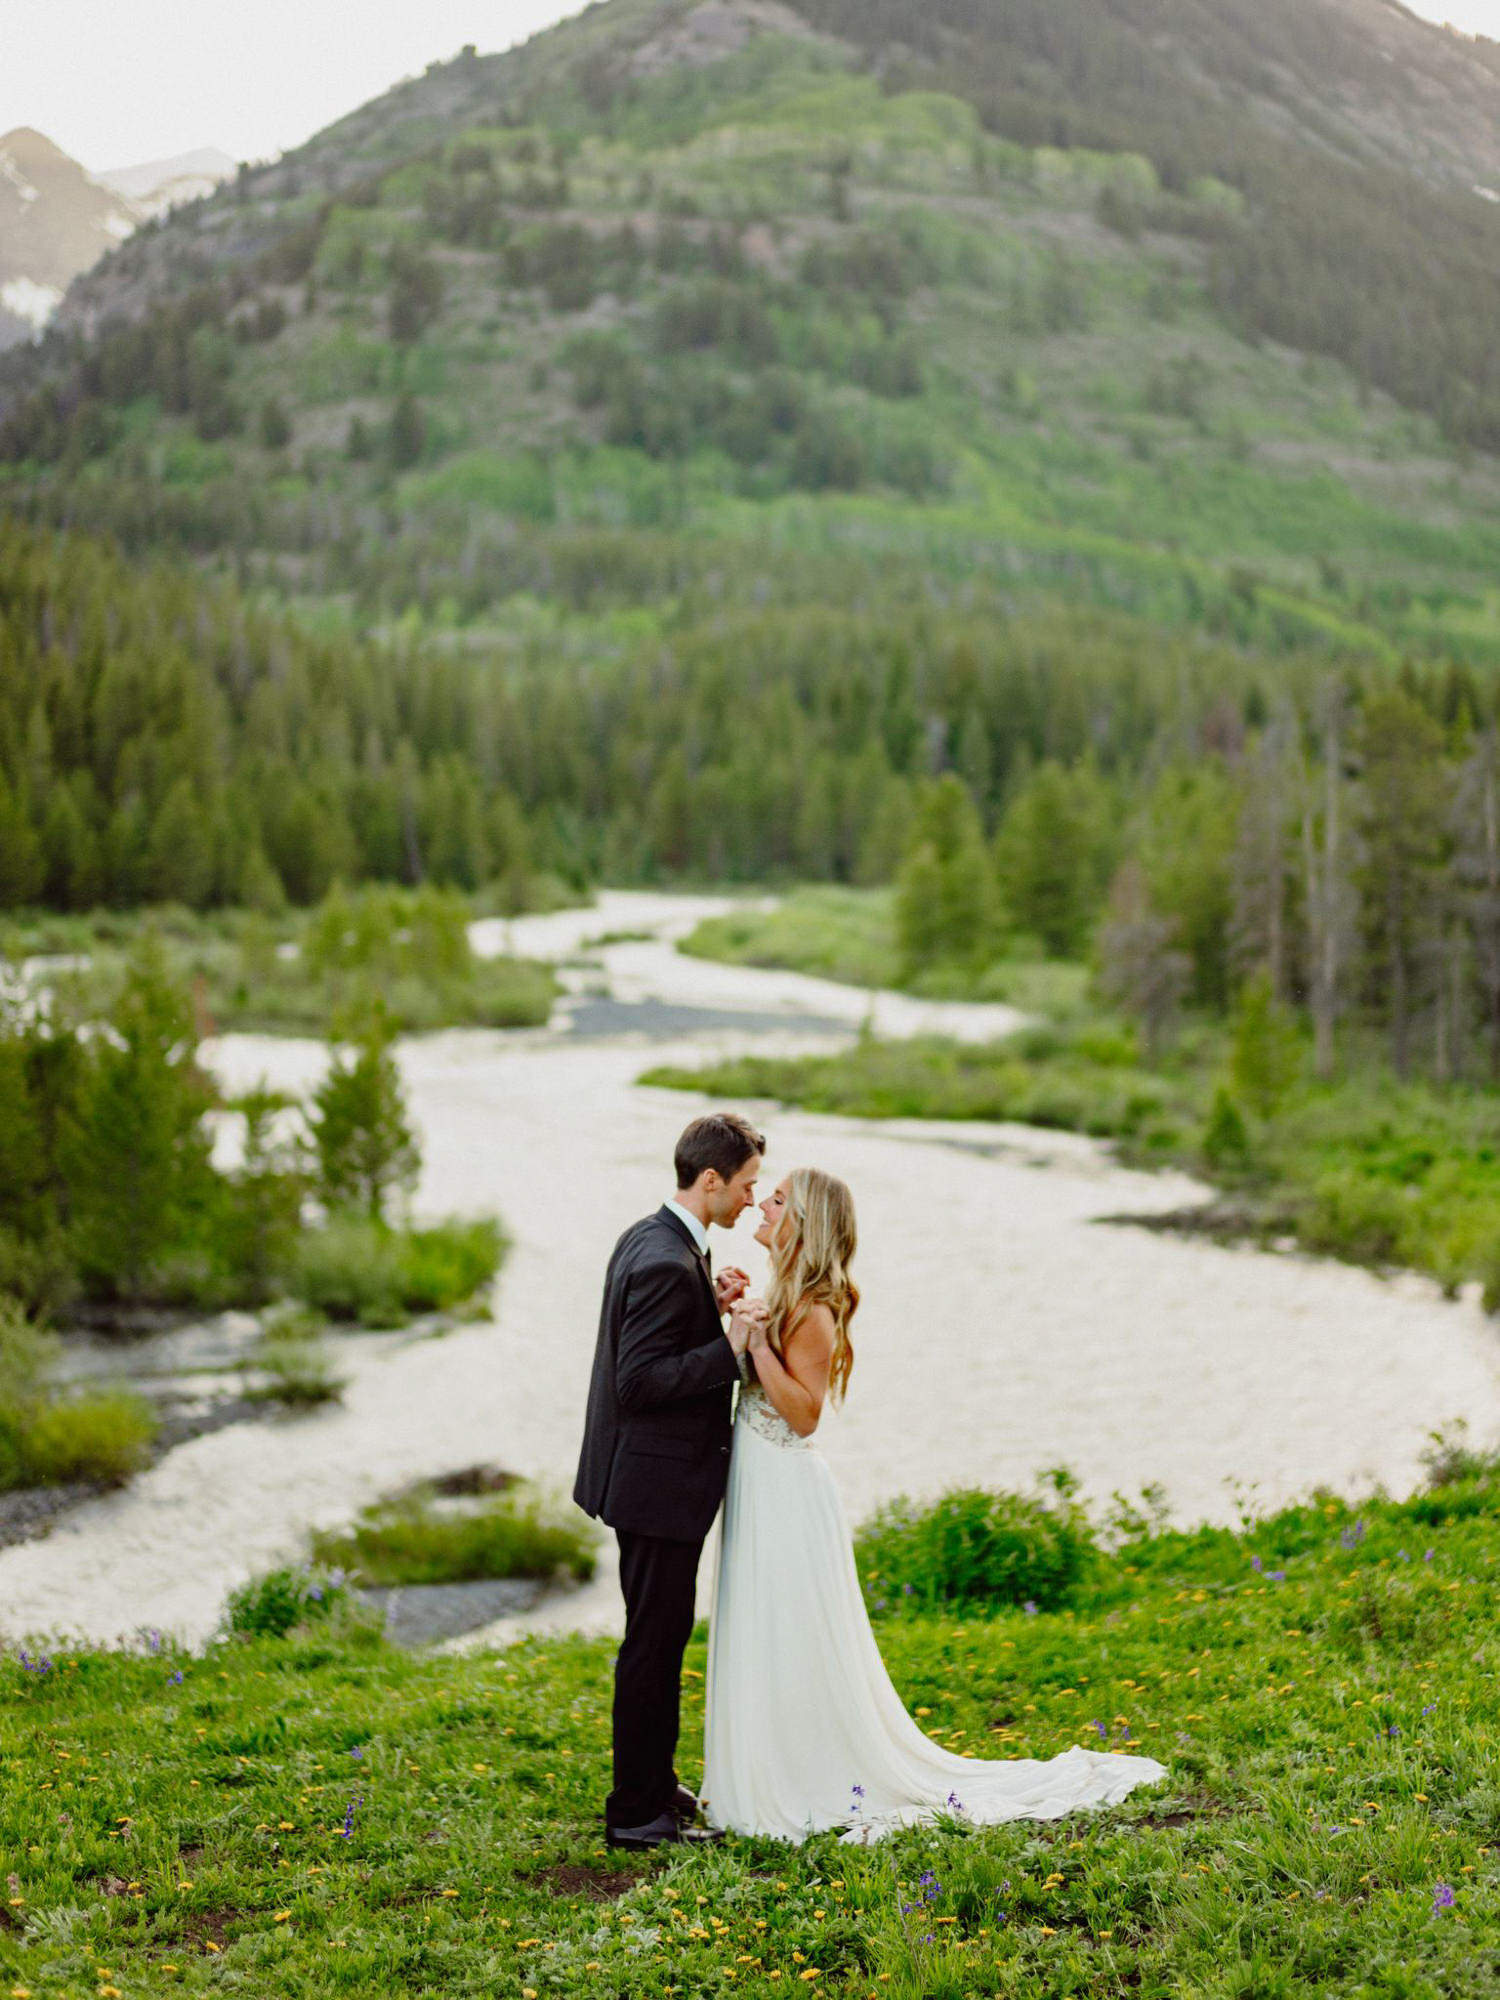 Couple hold hands against river and mountain scene, photo by Benj Haisch